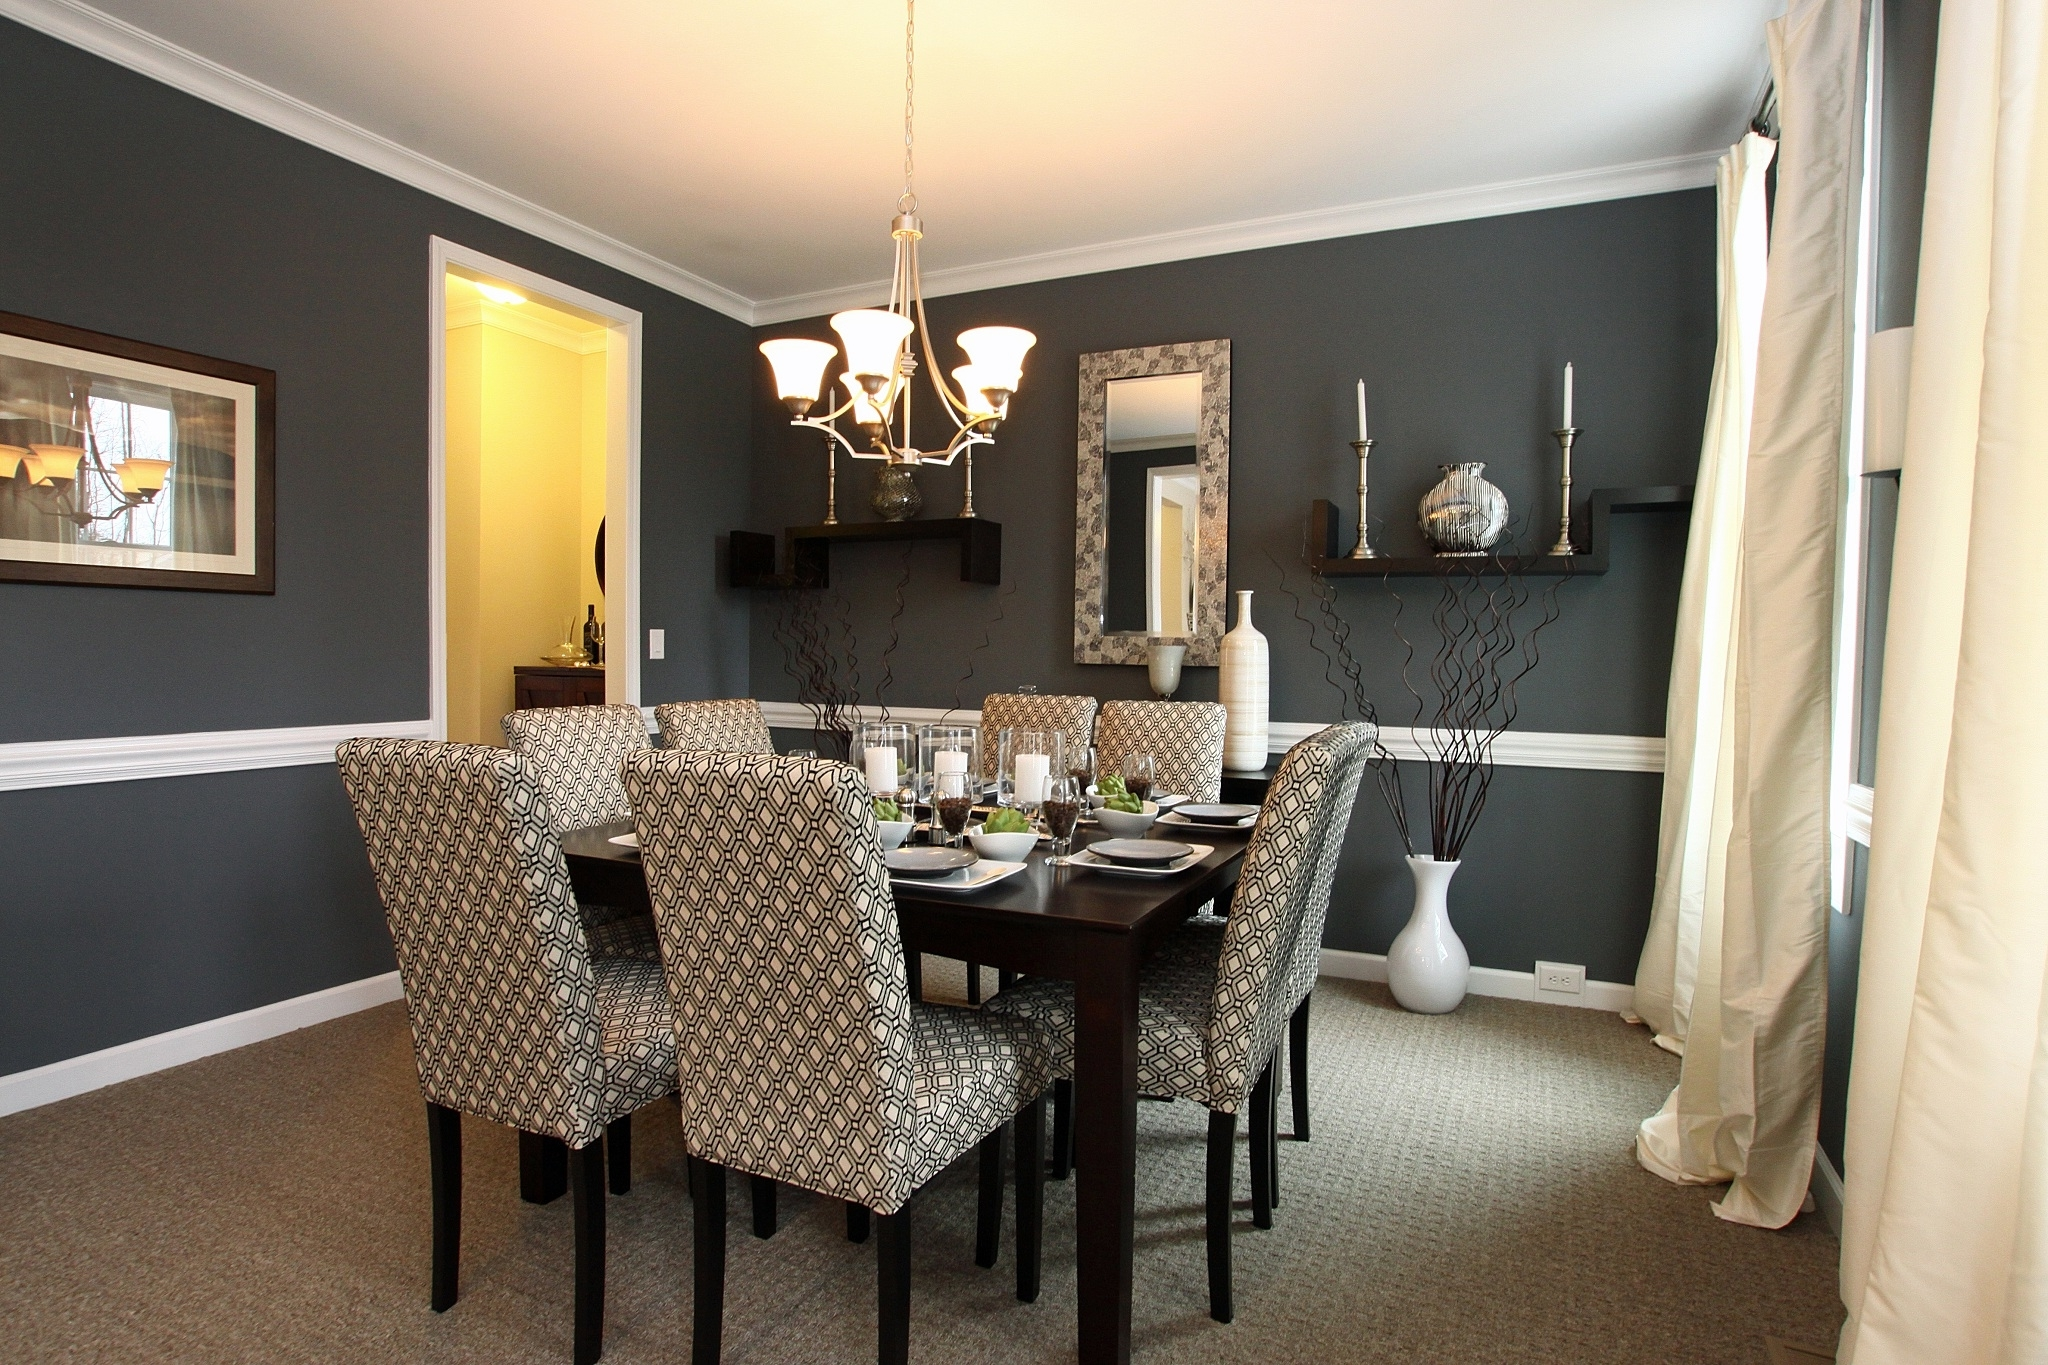 title | Dining room pictures for walls